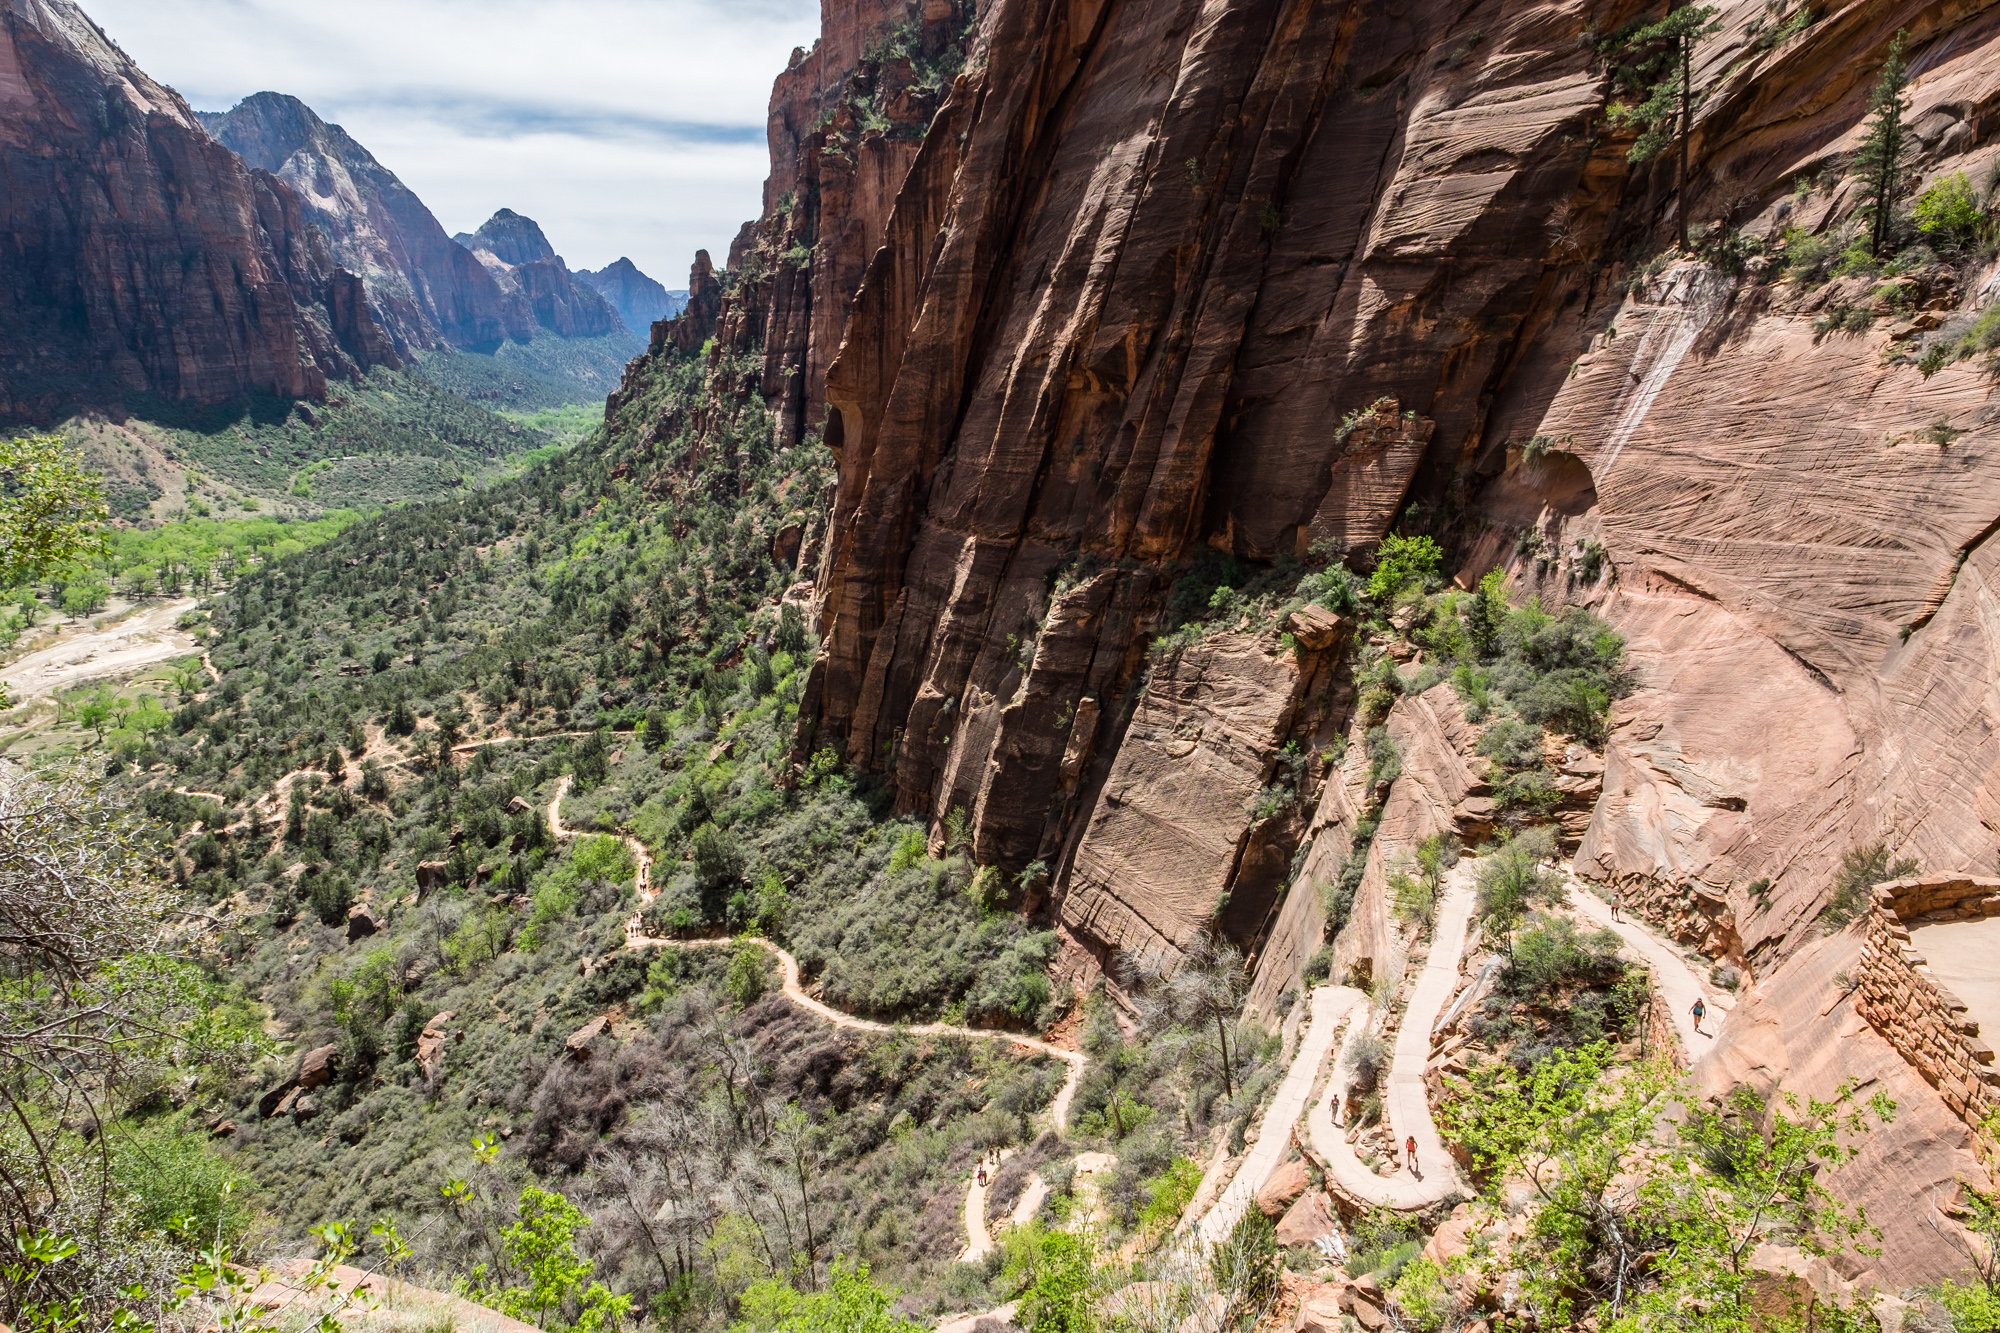 A peer down the Western Rim Trail en route to Angel's Landing and Scout's Lookout provides views of switchbacks zig-zagging down to the valley floor.